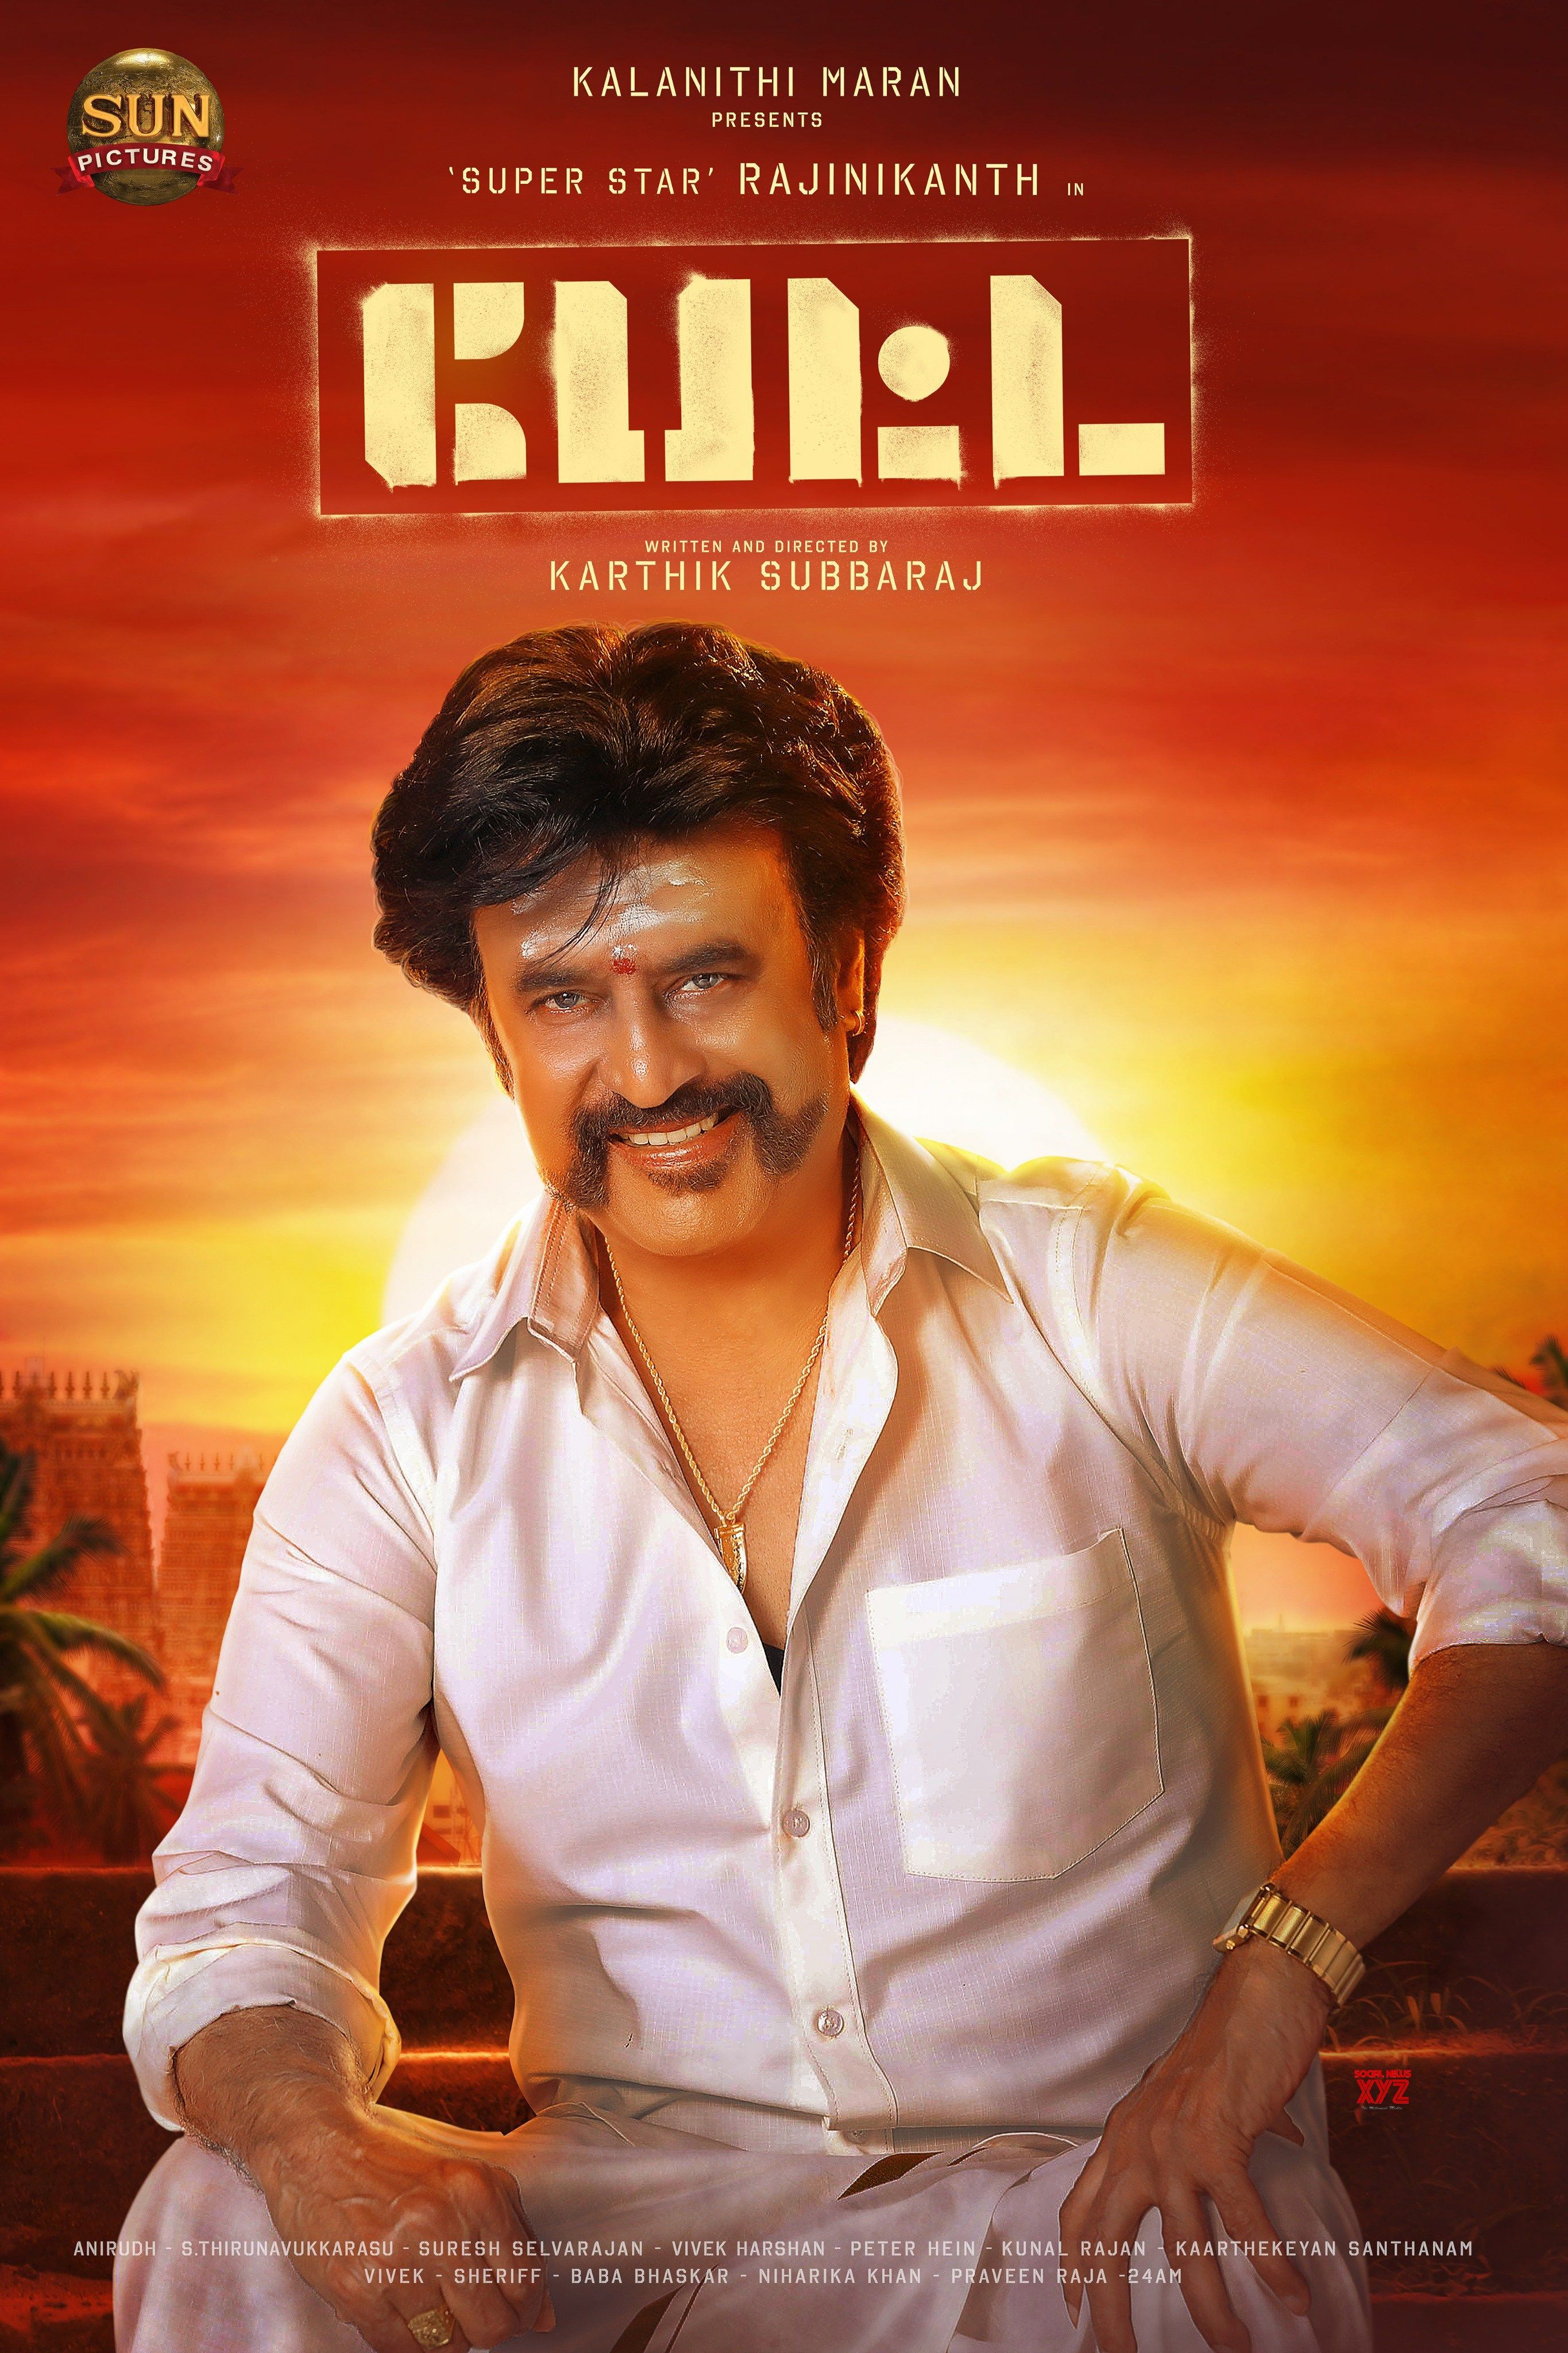 Petta Movie Second Look Hd Poster Social News Xyz Full Movies Tamil Movies Dvd Release